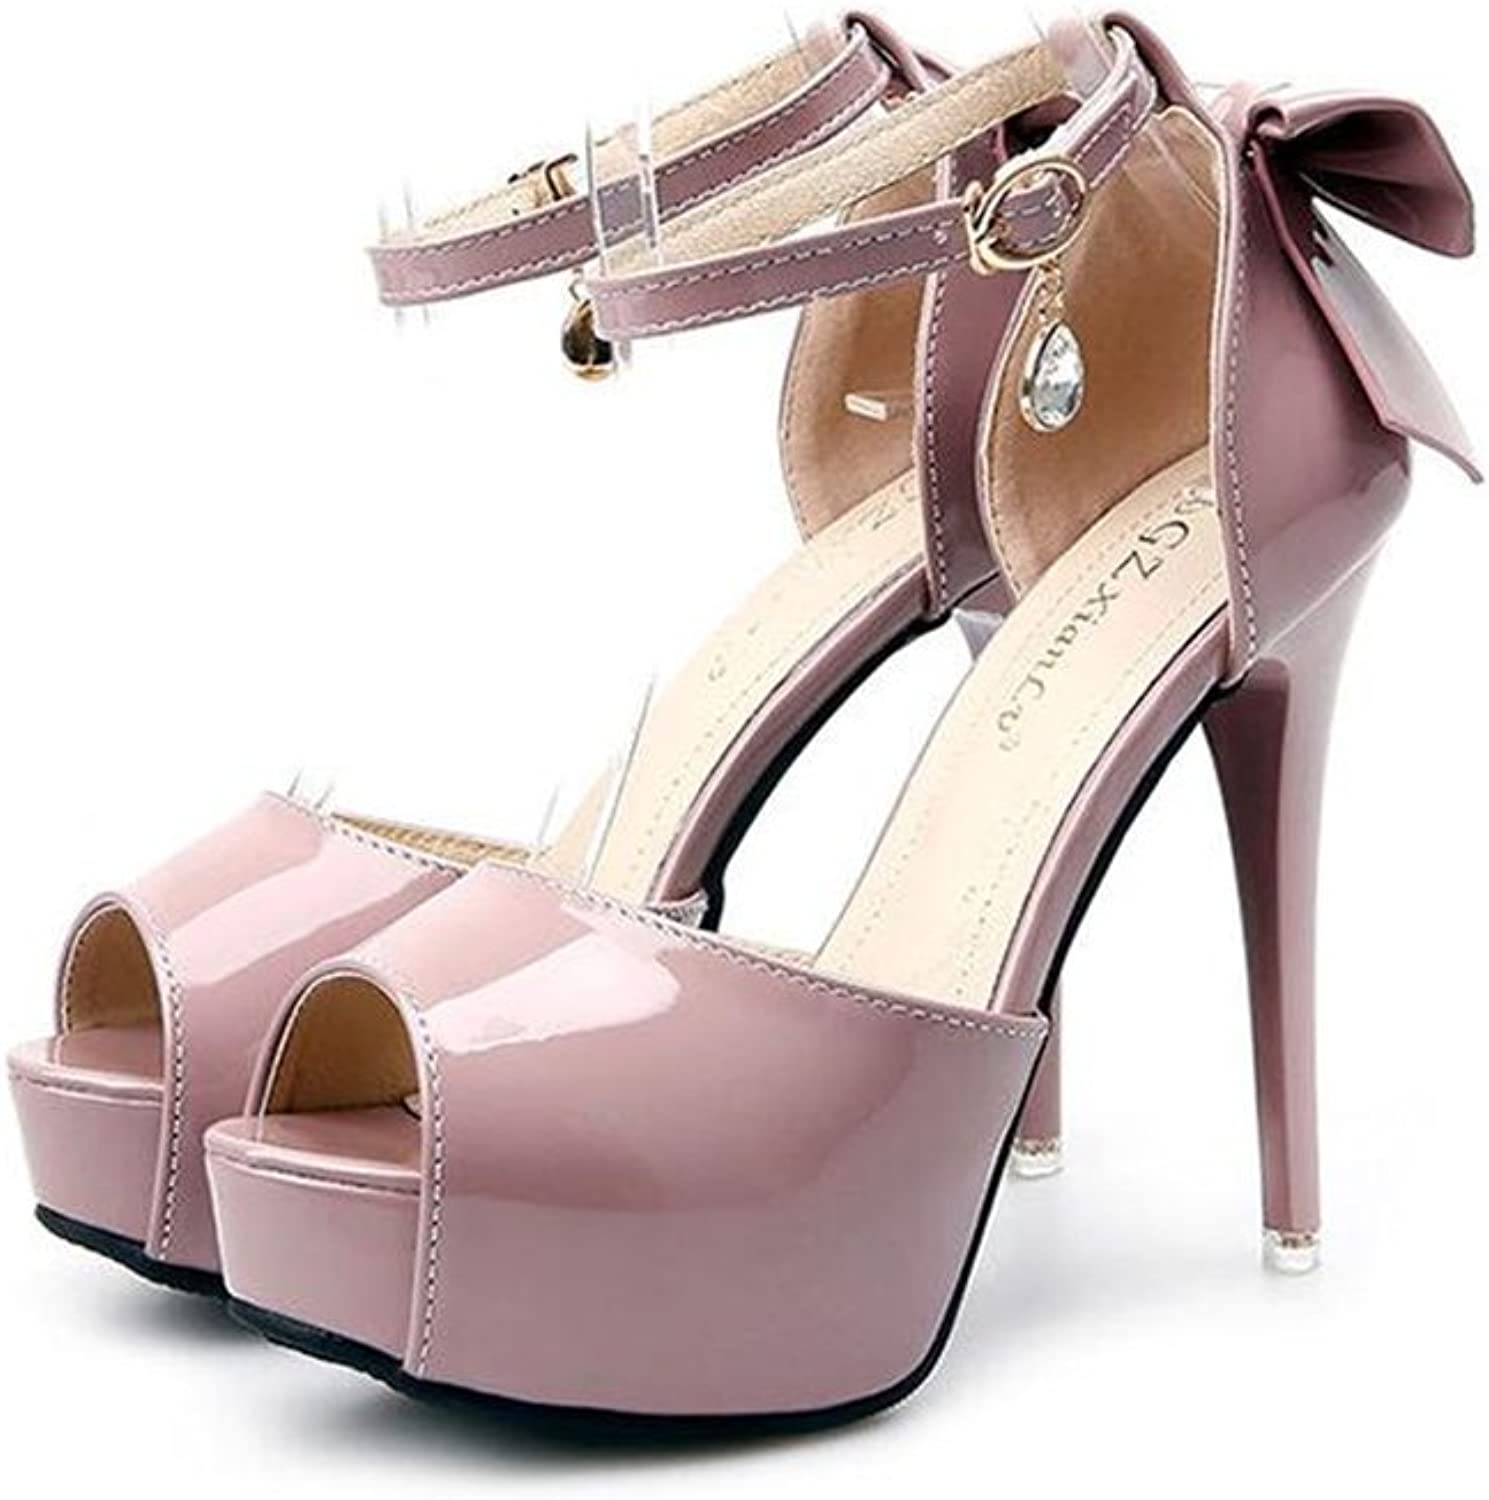 Women's Patent Leather Fashion Sexy Ankle Strap Pumps Platform Stiletto High Heels Party shoes